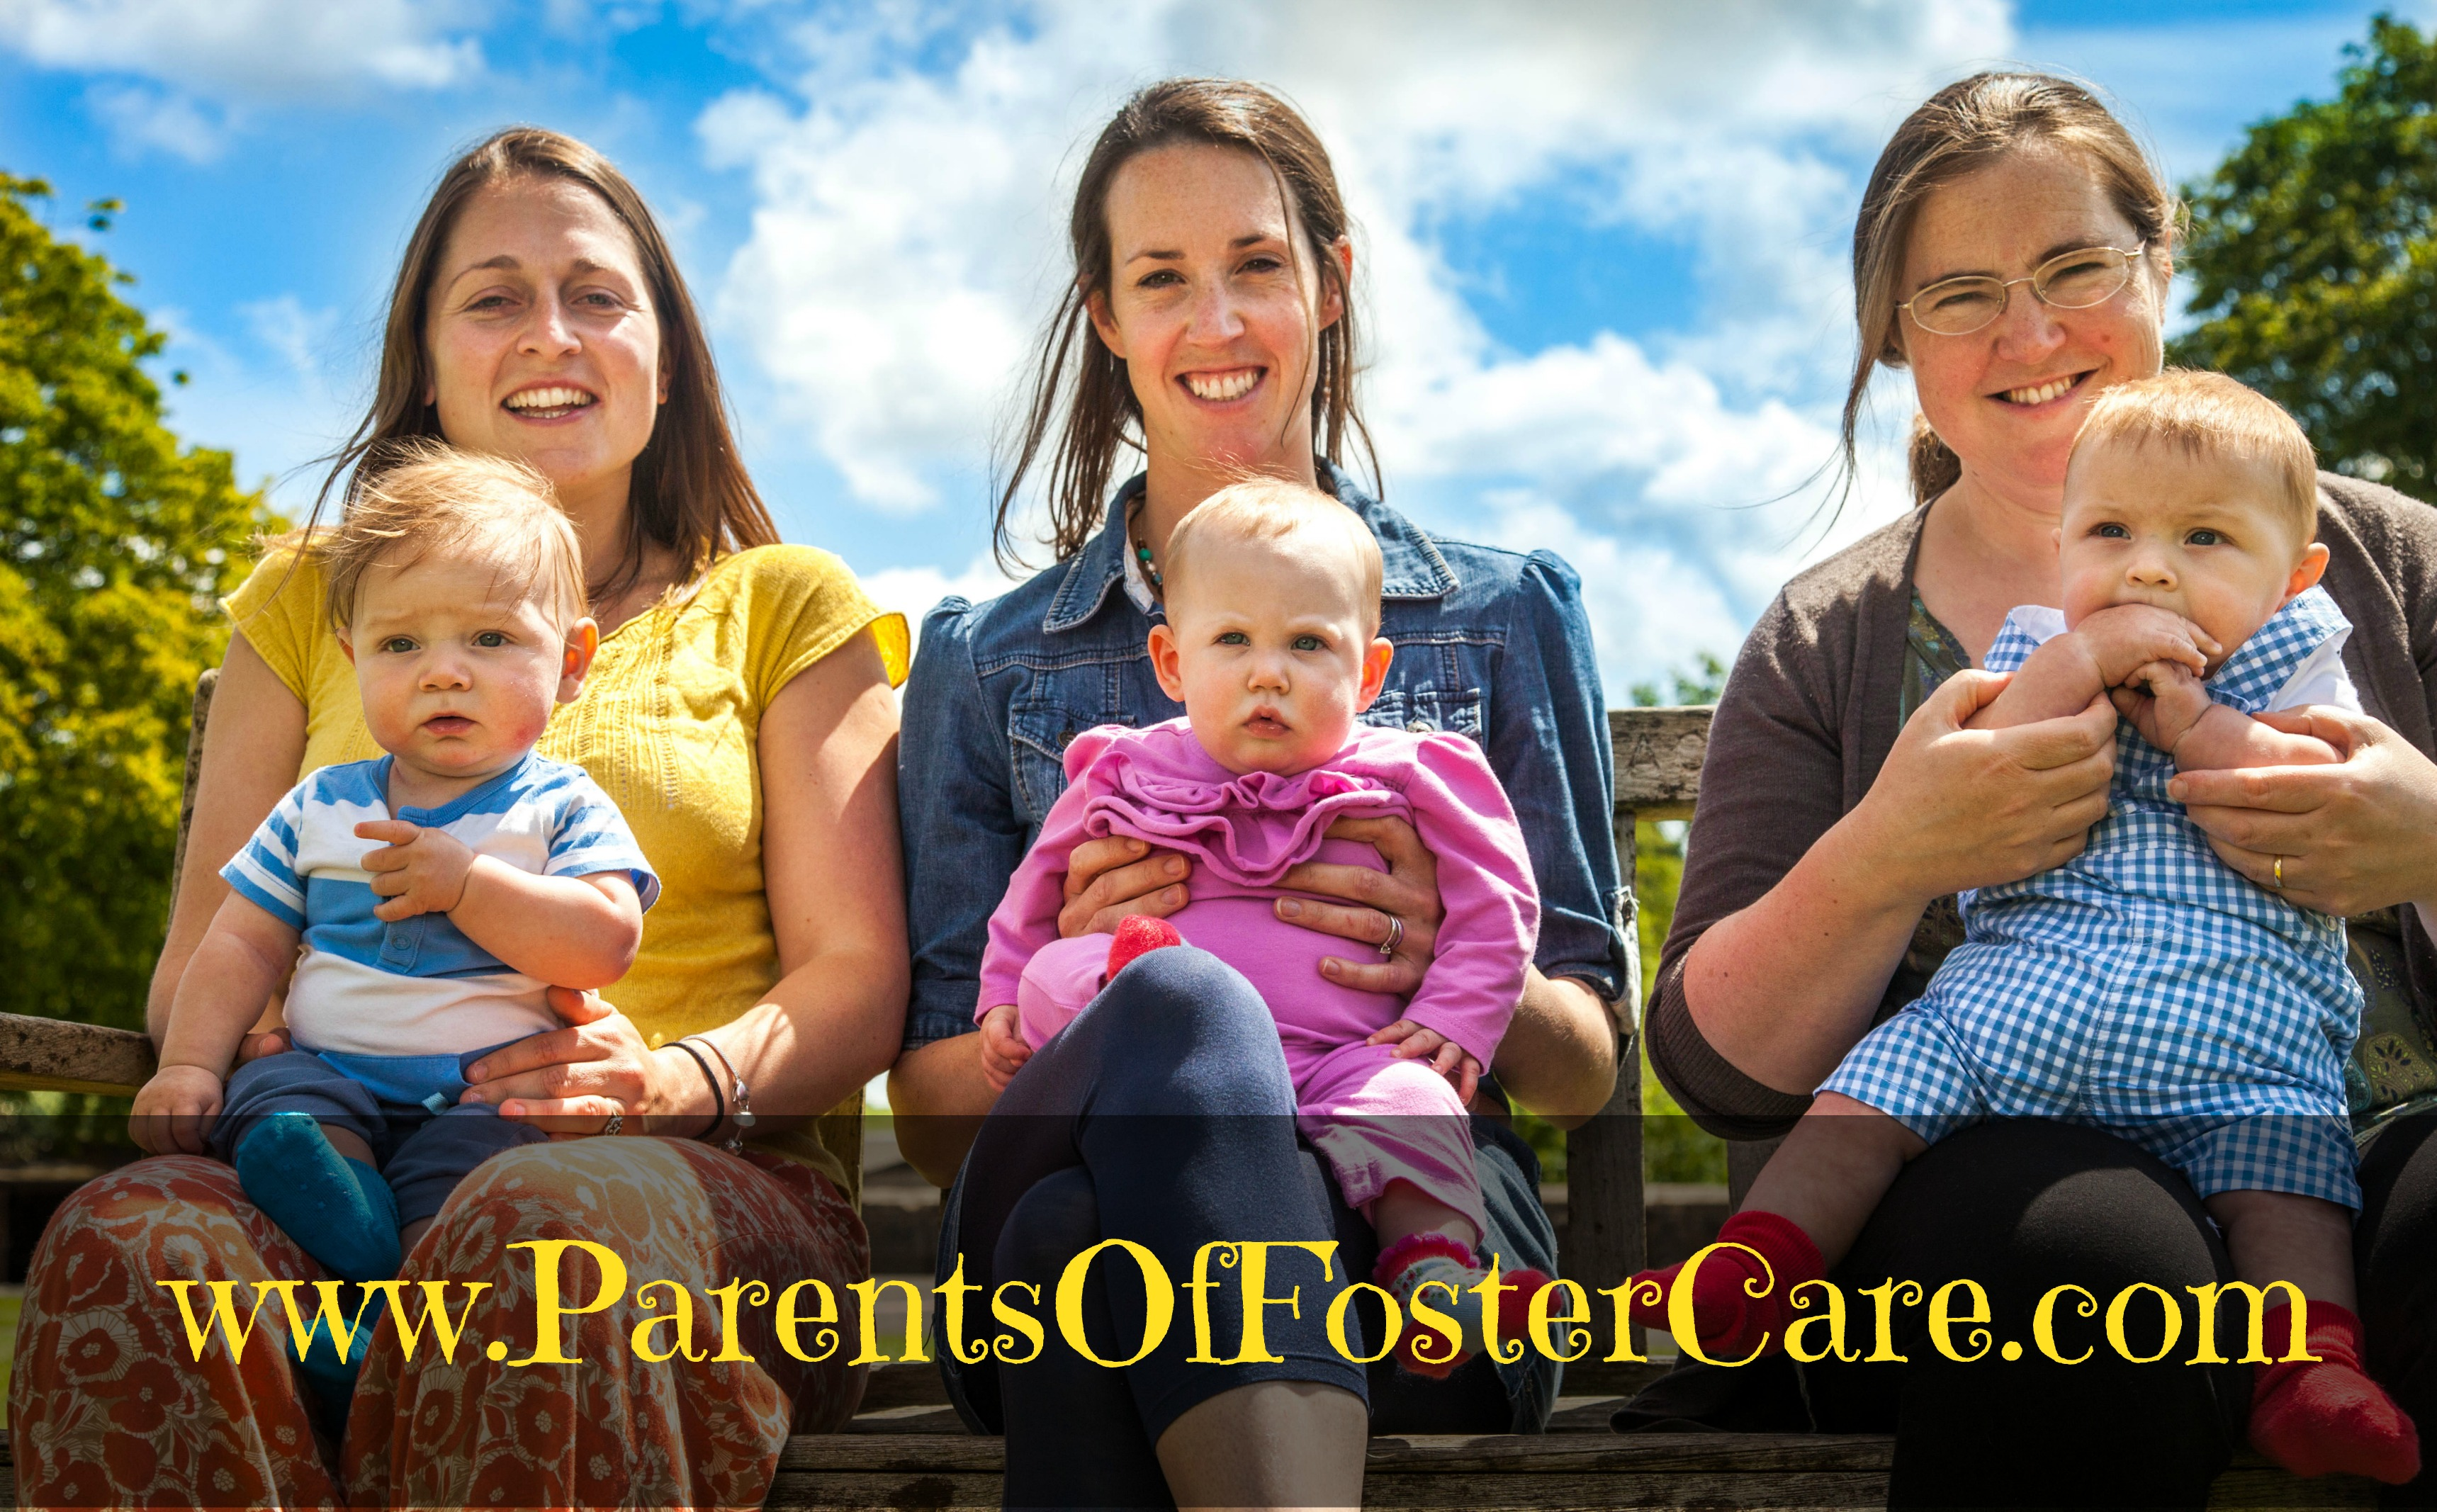 Parents of Foster Care 3 Moms